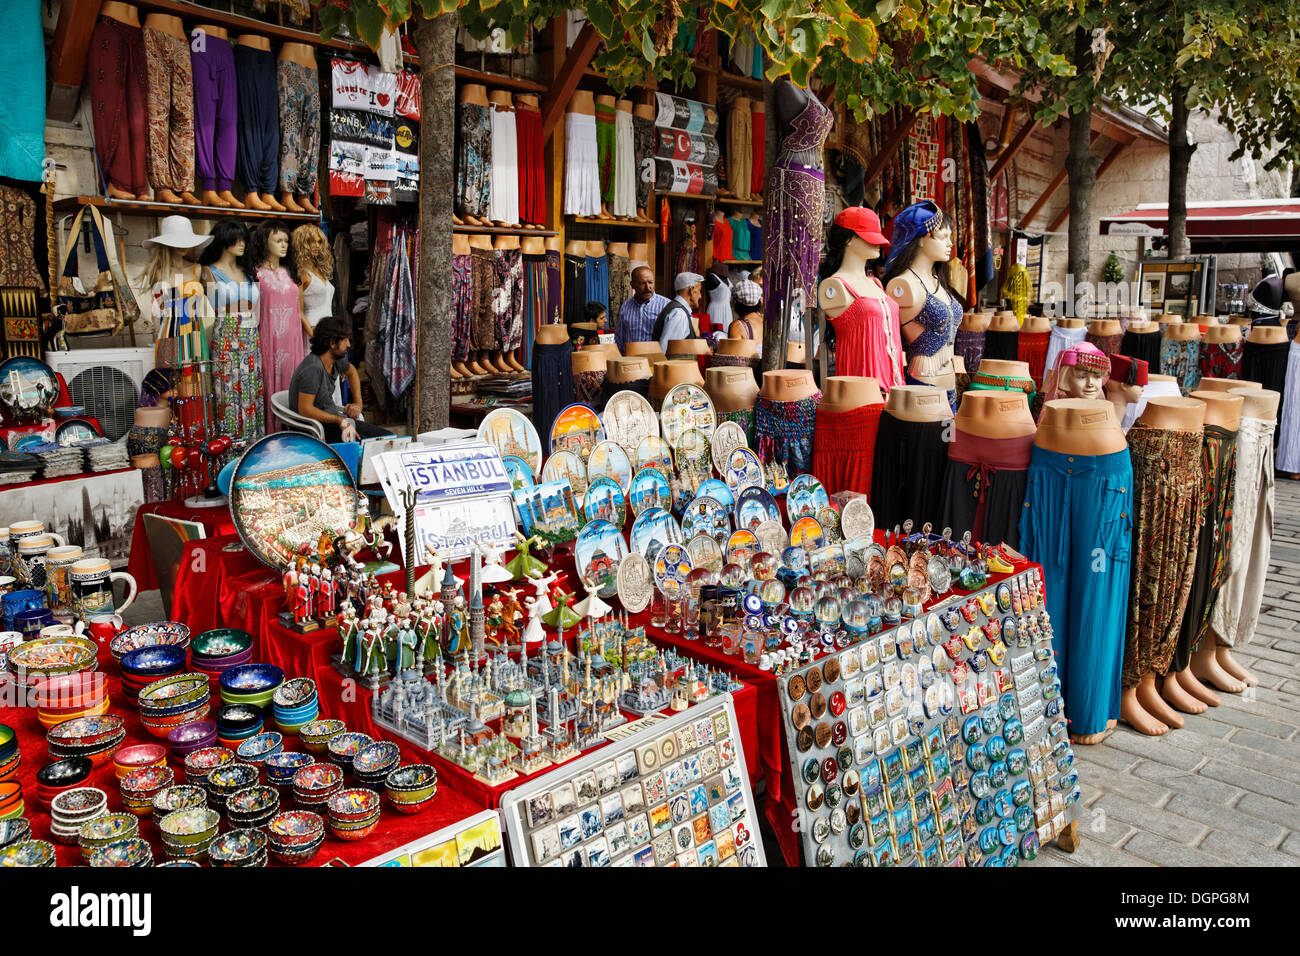 Souvenir stalls in the street, Sultanahmet historic district, Istanbul, Turkey, Europe, PublicGround - Stock Image